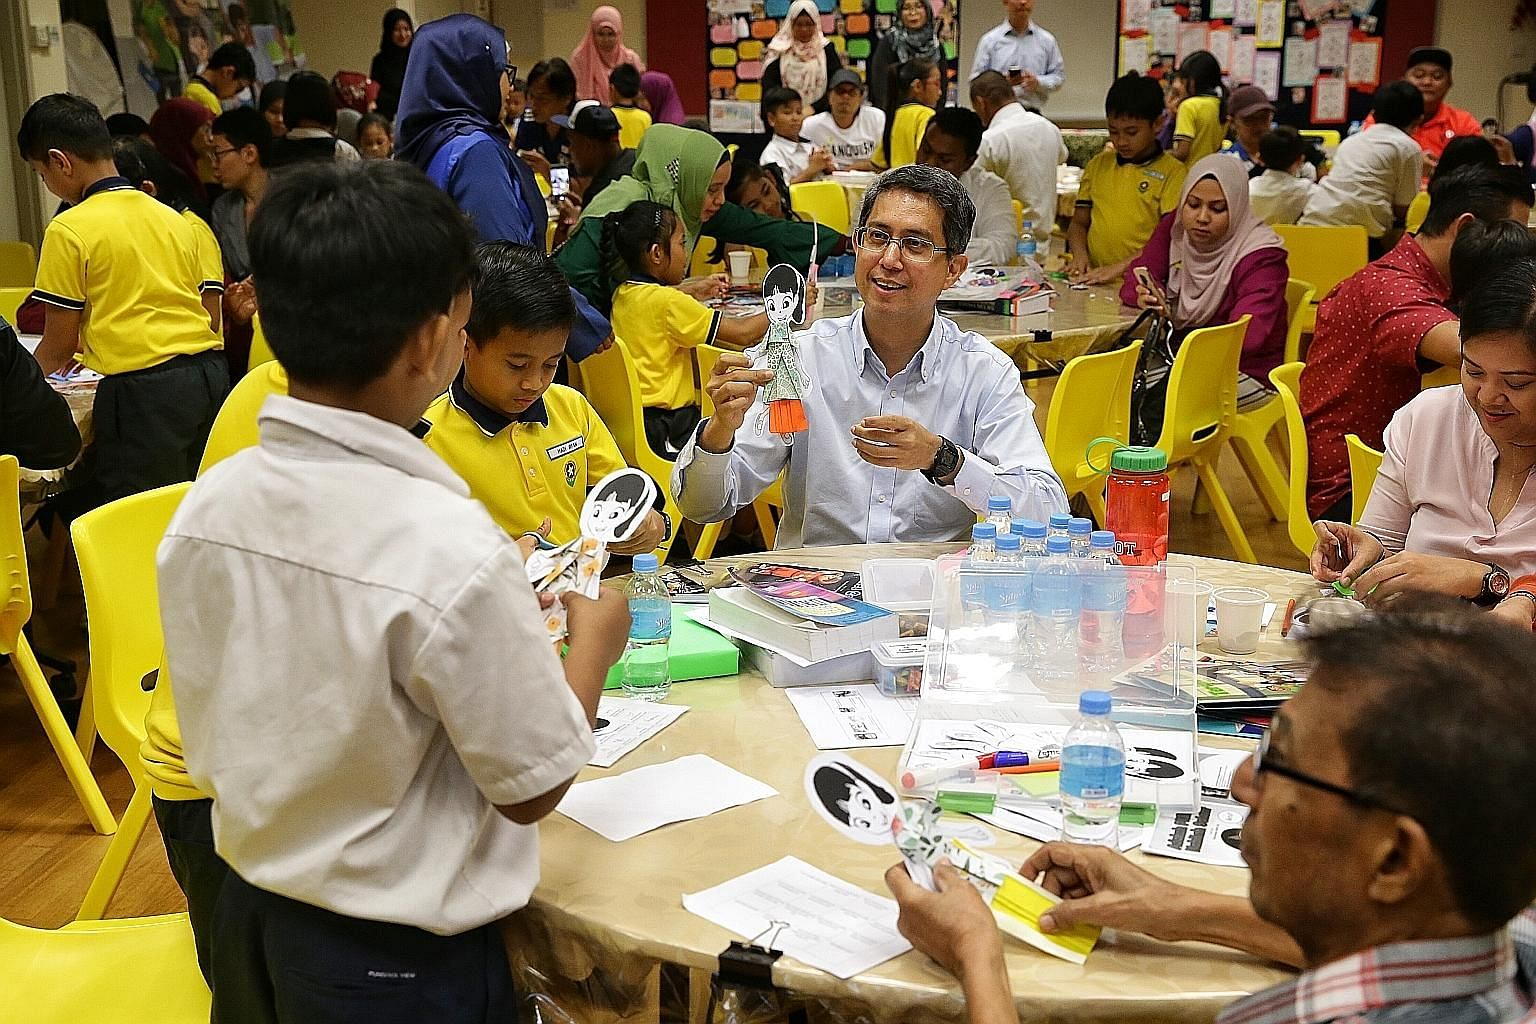 Senior Parliamentary Secretary for Education Muhammad Faishal Ibrahim joining pupils and parents in a Storygami activity during a workshop on reading using the Nabil Nabilah Reader Series, at Punggol View Primary School yesterday.